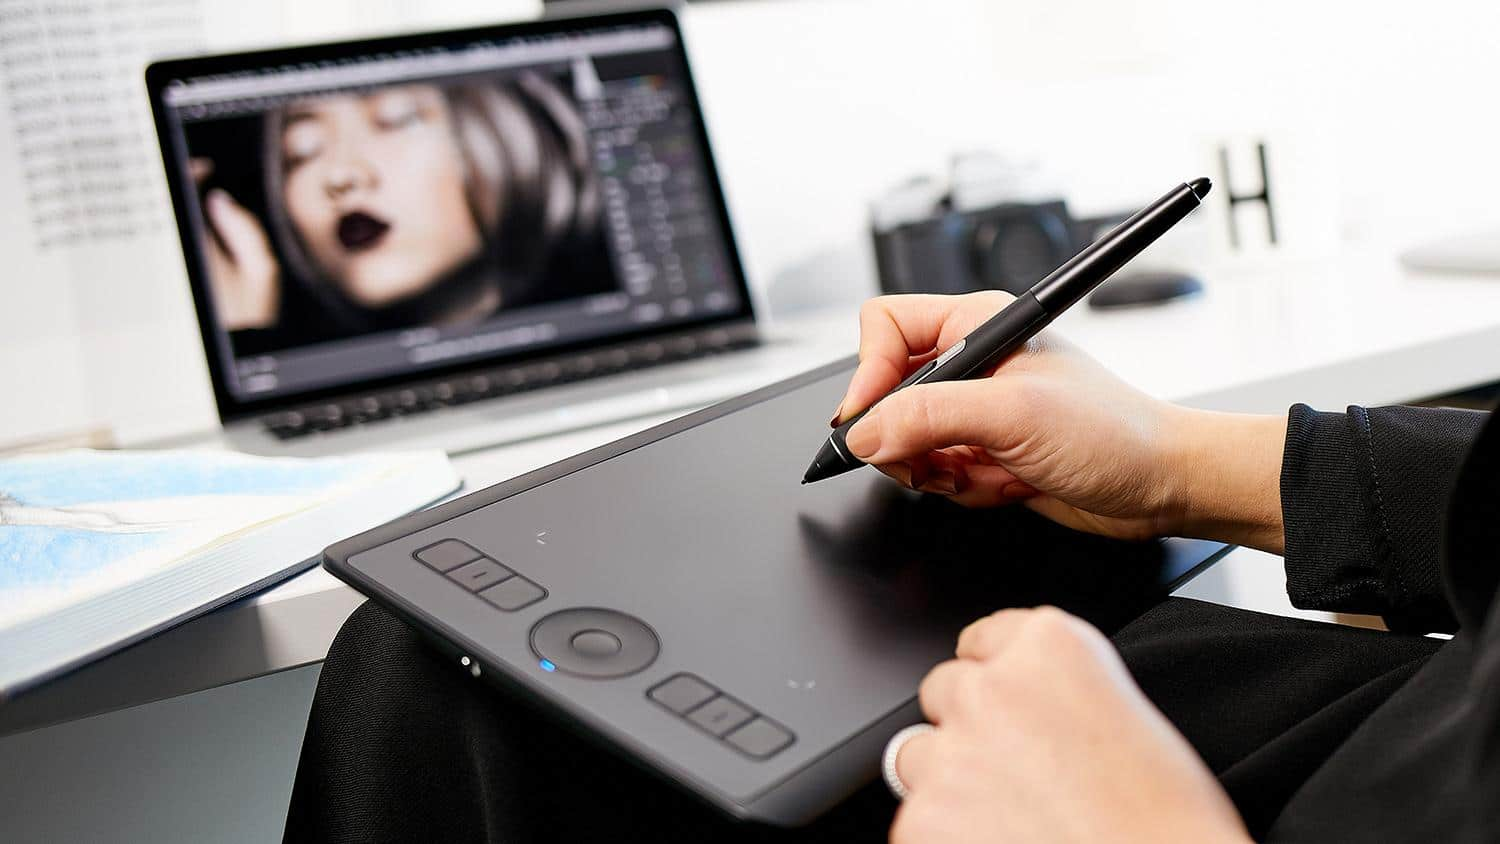 There's now a small Wacom Intuos Pro again for designers and artists on the move